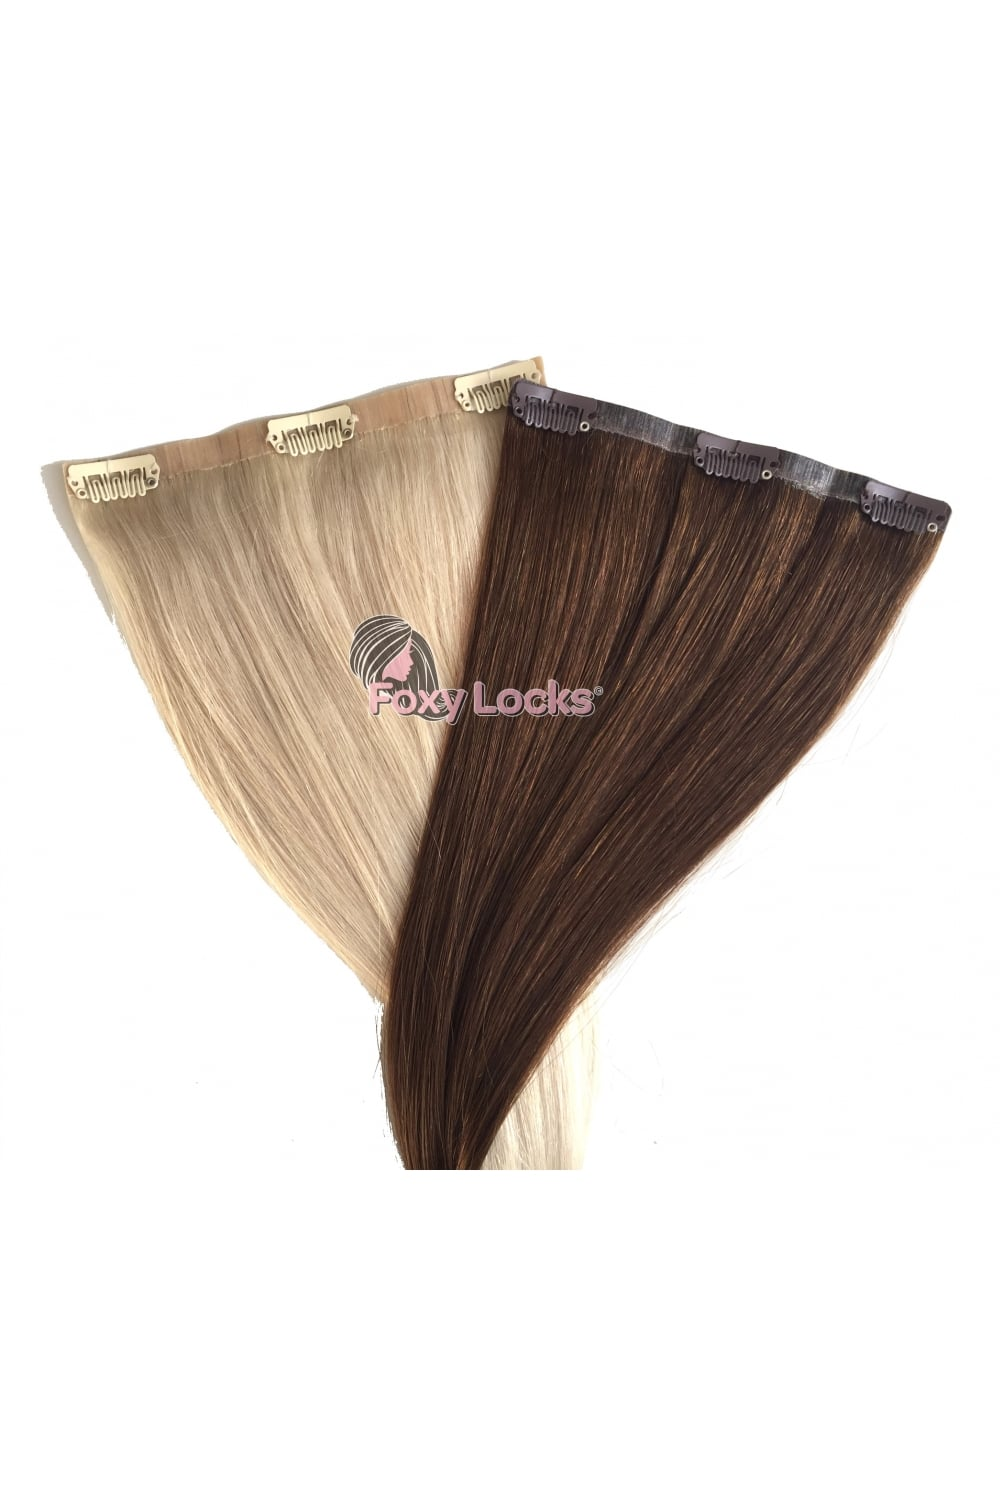 Sunkissed Brown Luxurious Seamless 24 Clip In Human Hair